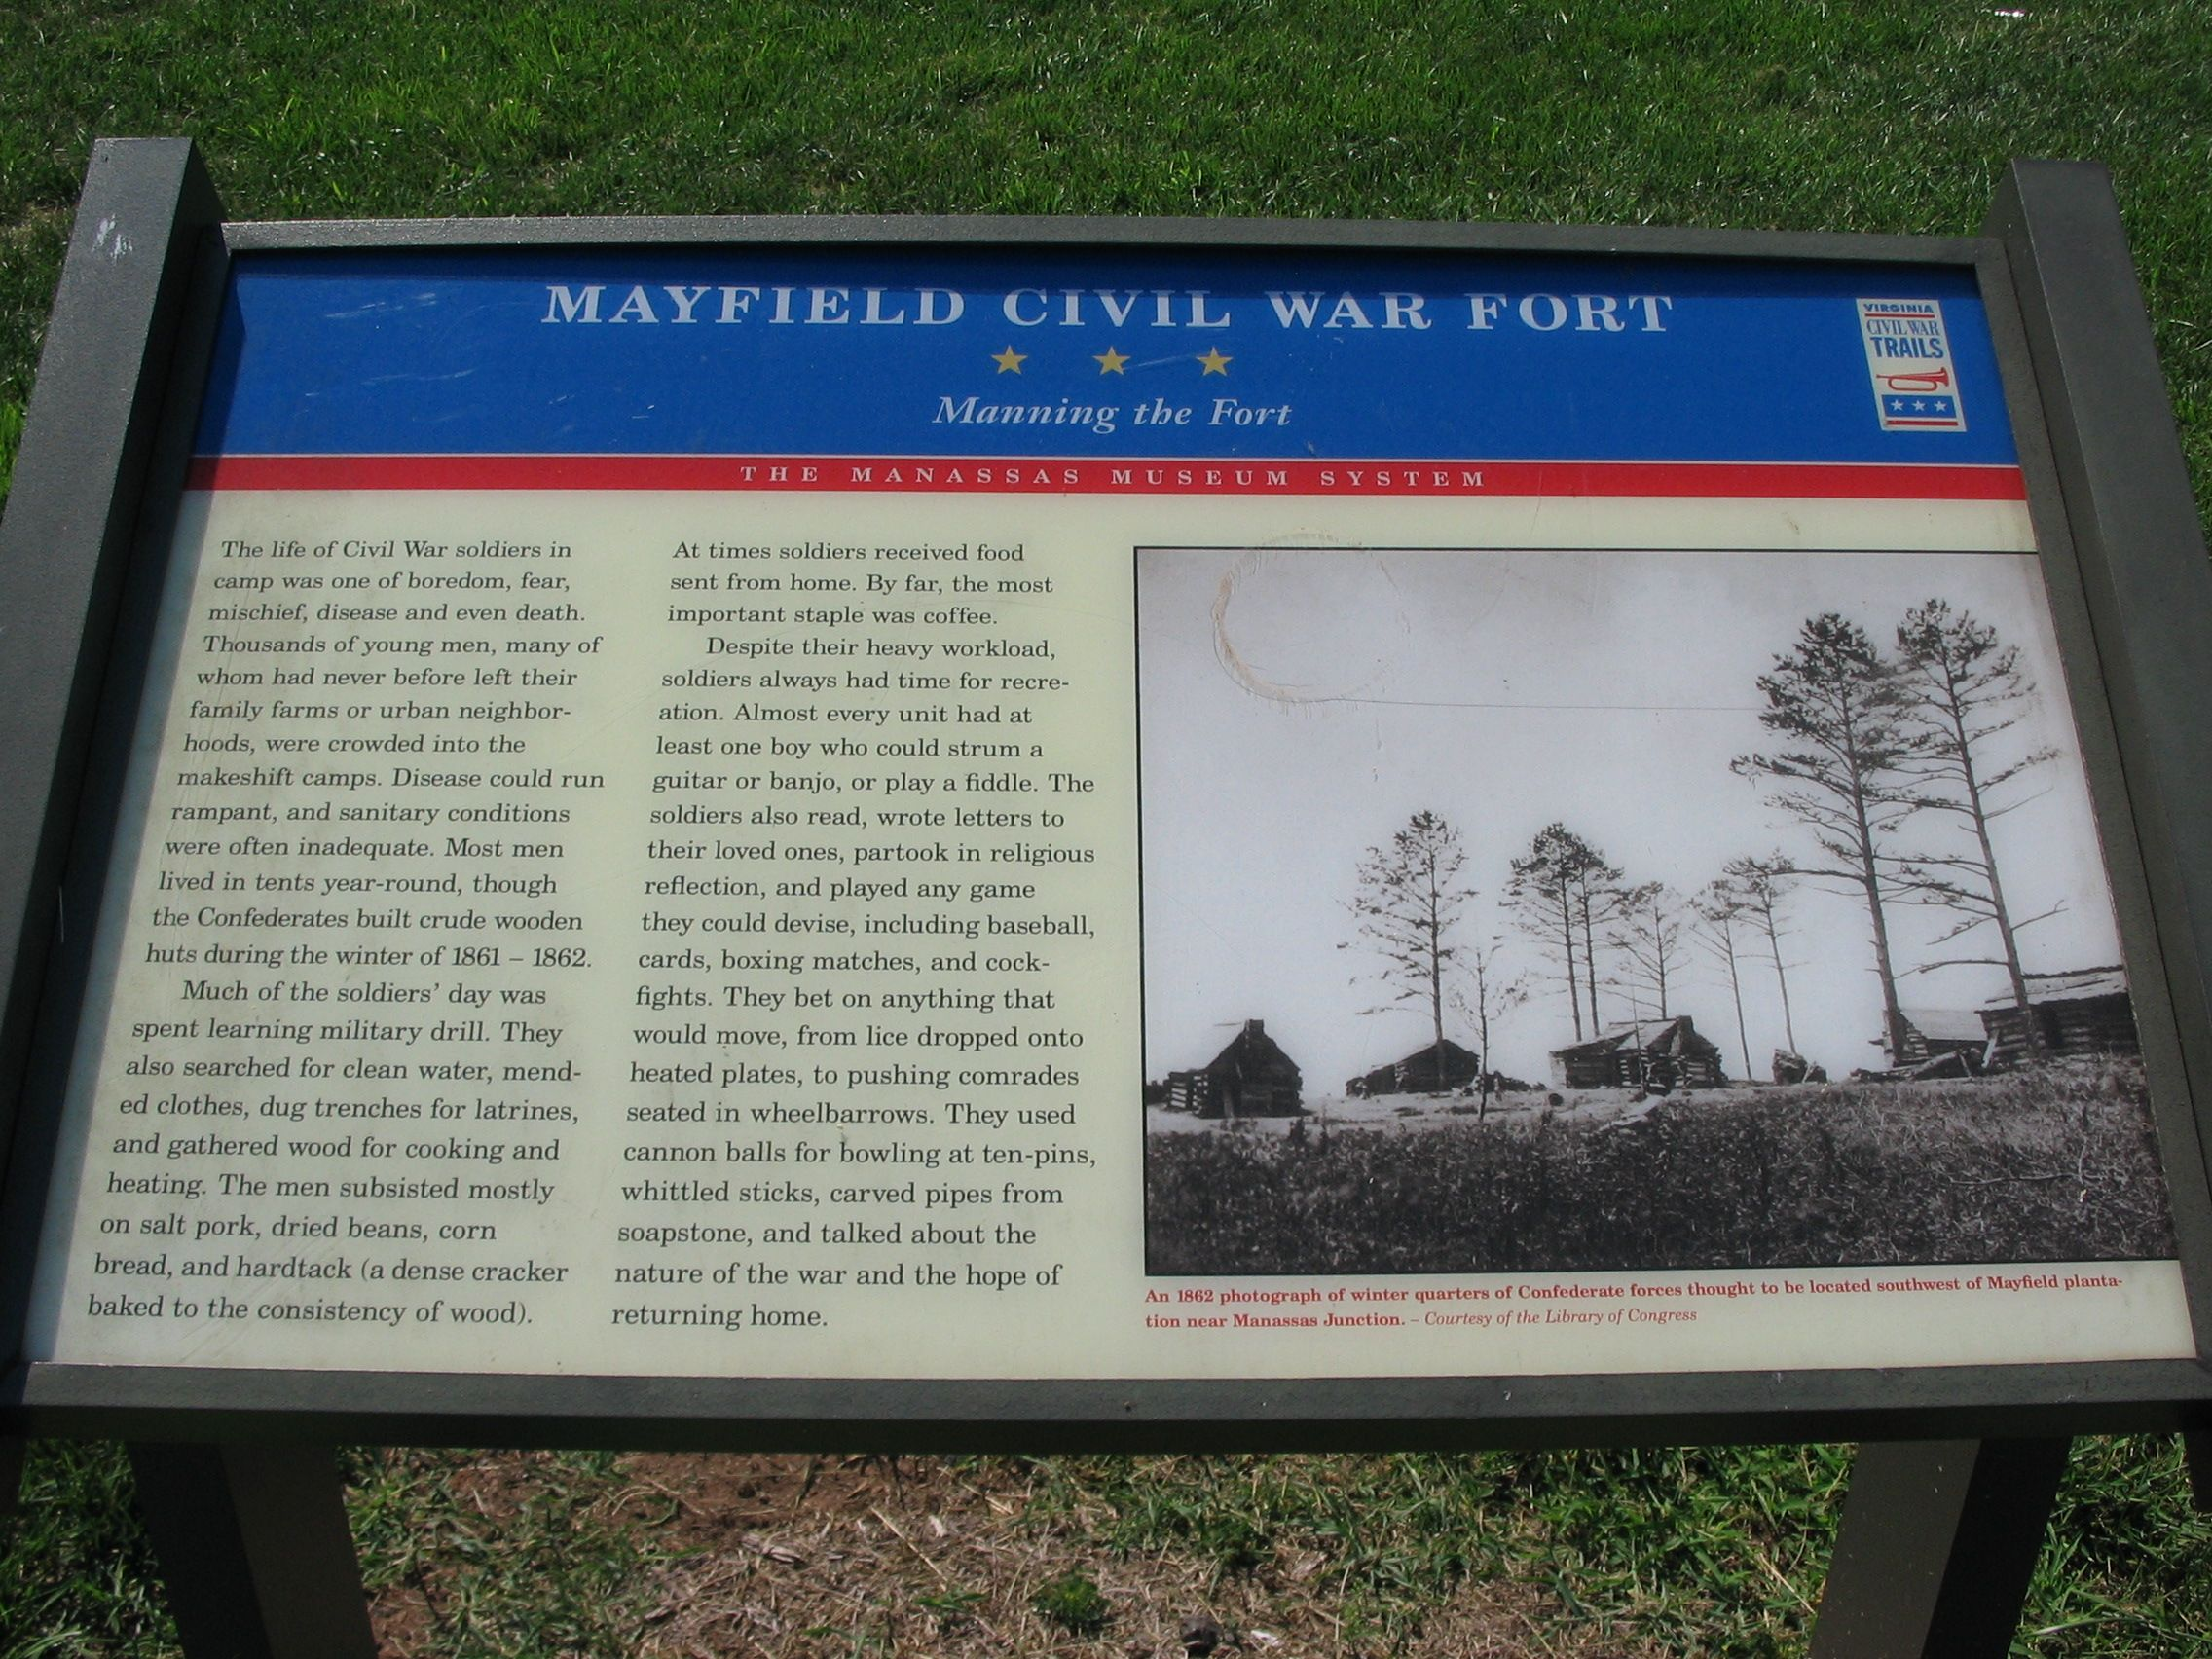 Mayfield Civil War Fort - Manning the Fort Marker